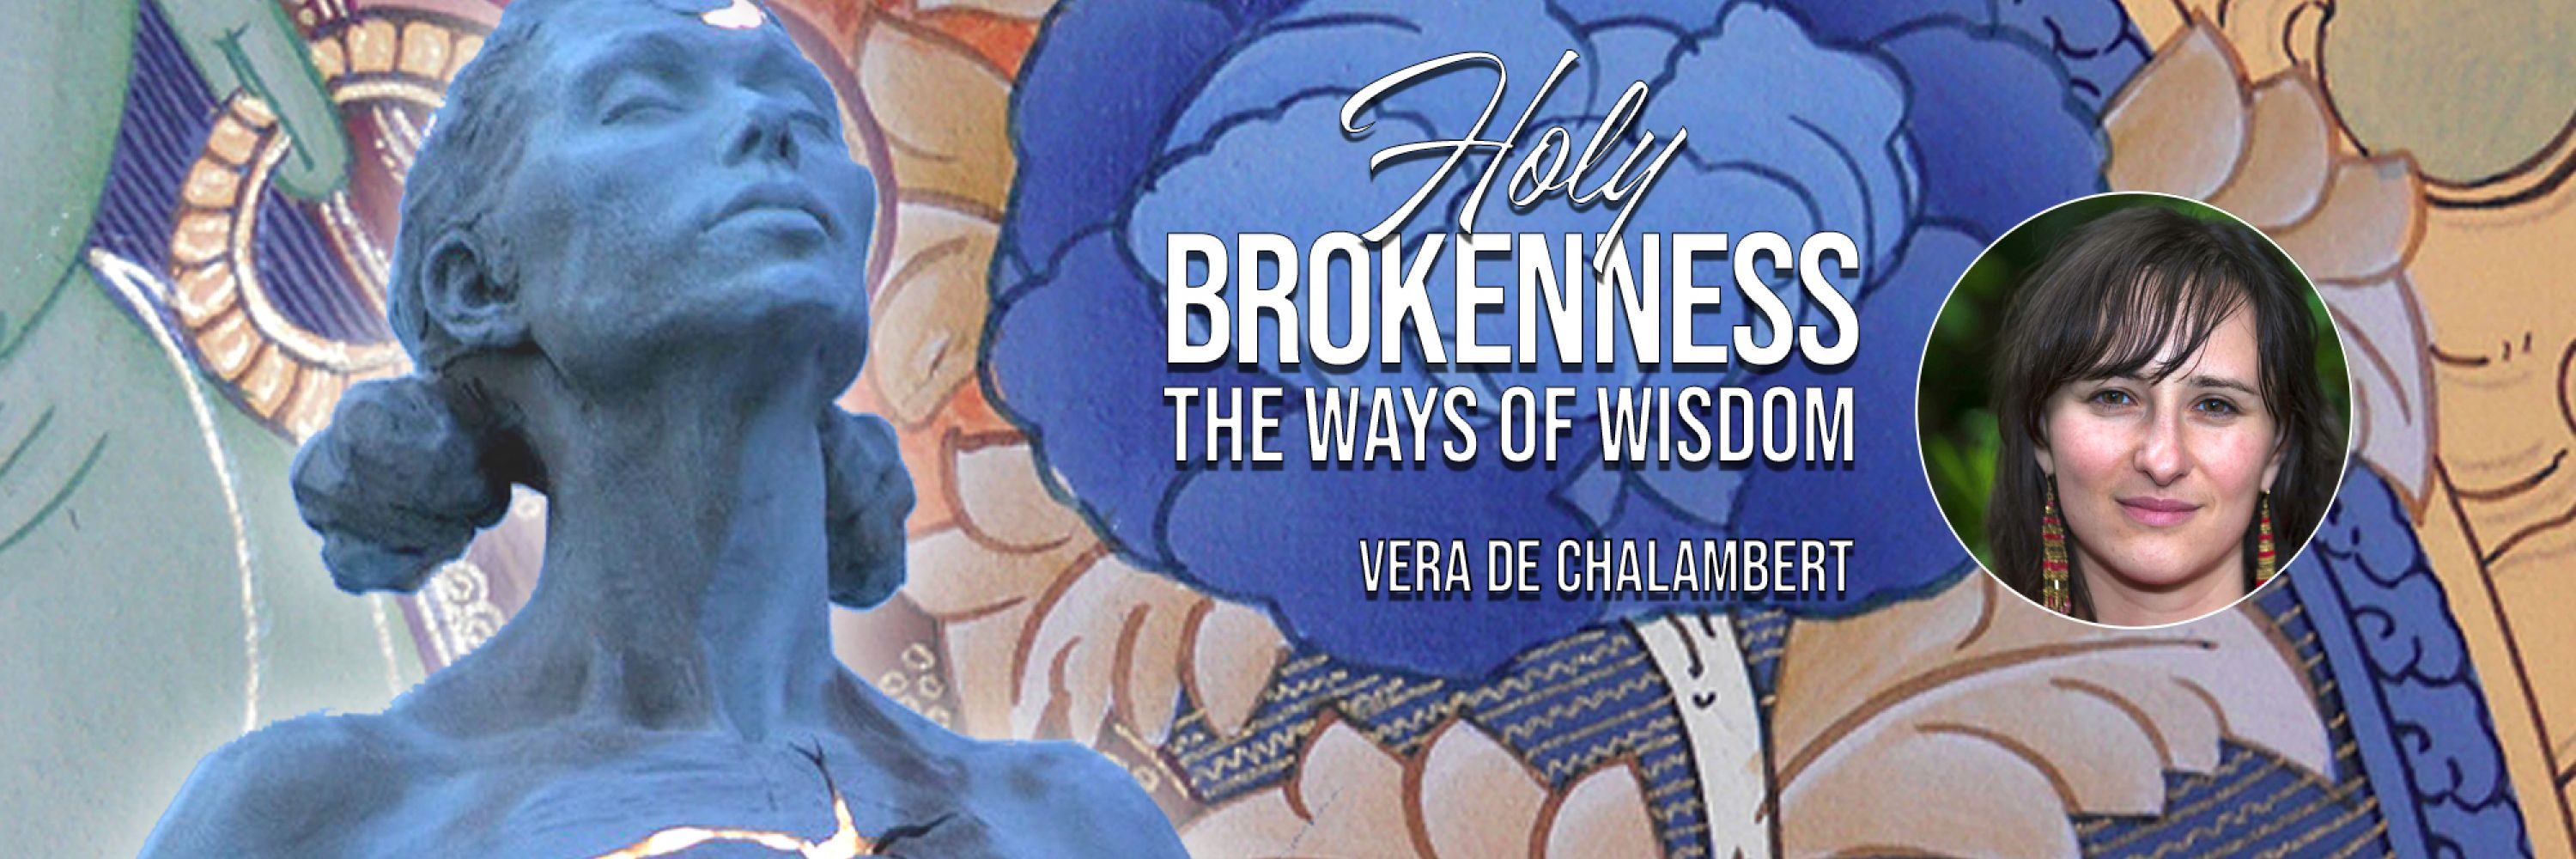 Holy Brokenness—The Ways of Wisdom